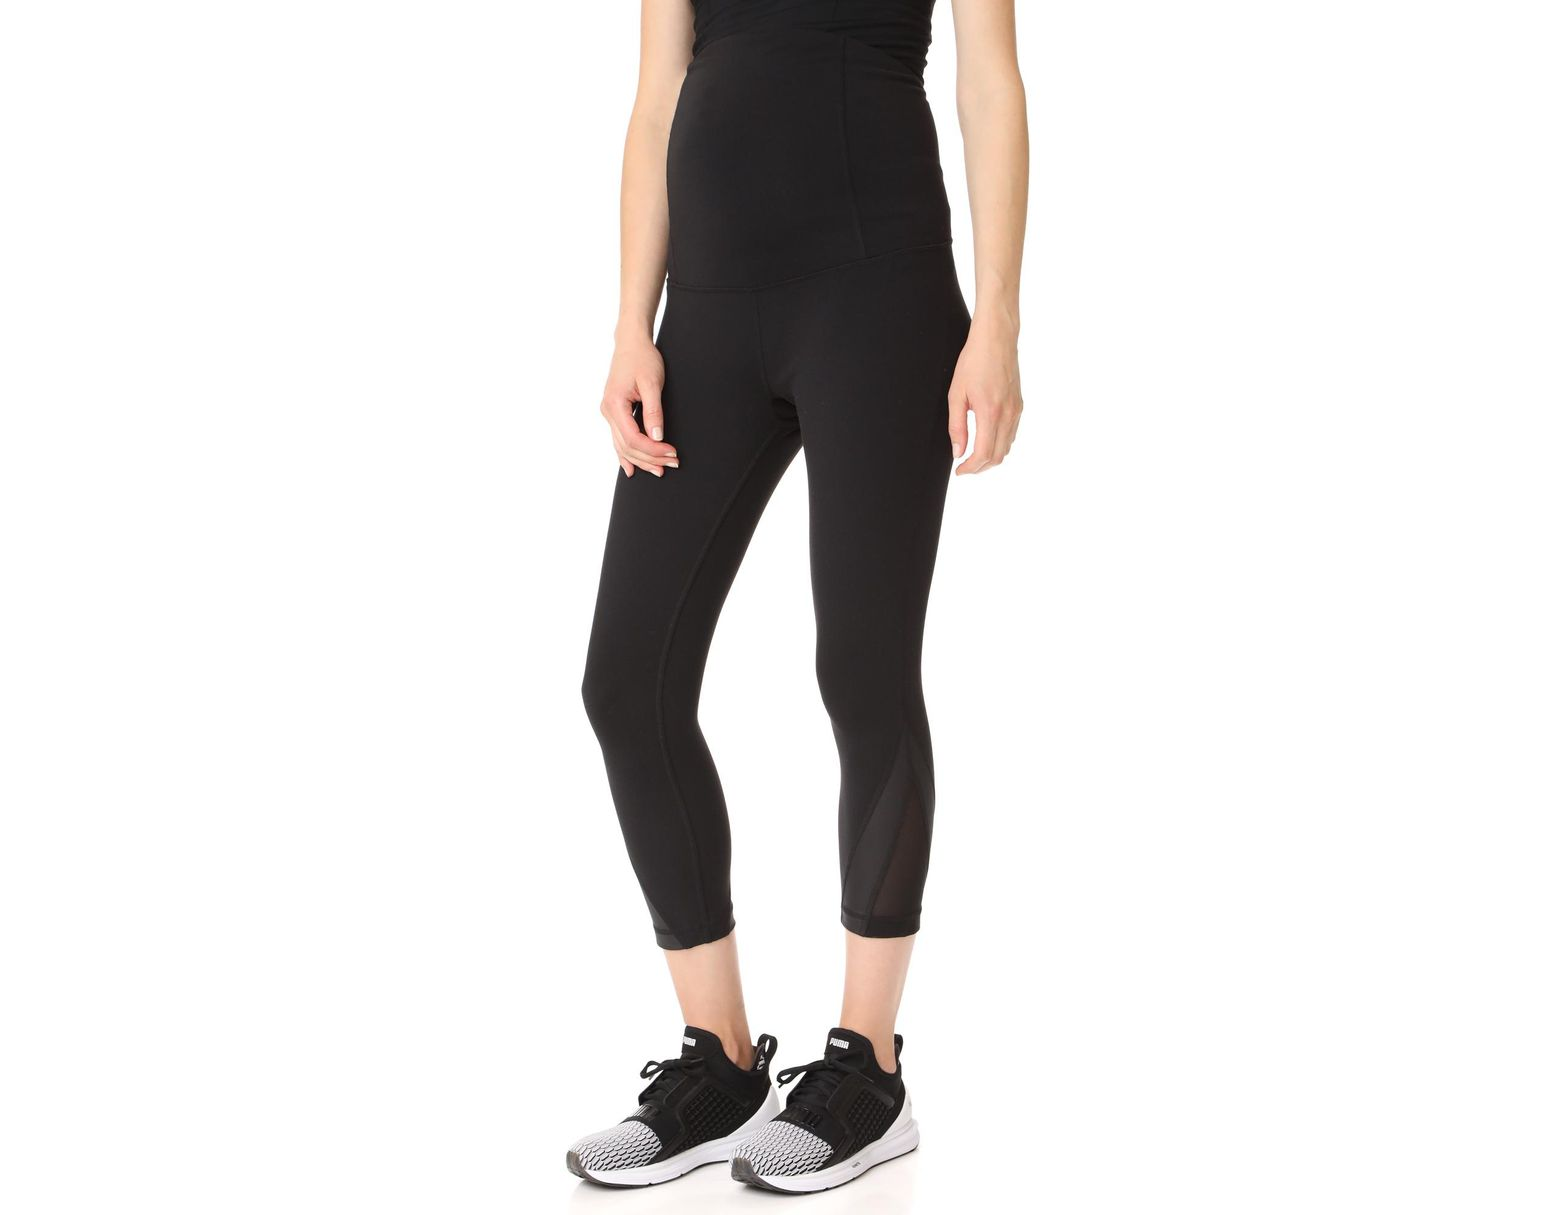 67e88f5a9d781d Ingrid & Isabel Active Mesh Detail Capri With Crossover Panel in Black -  Lyst